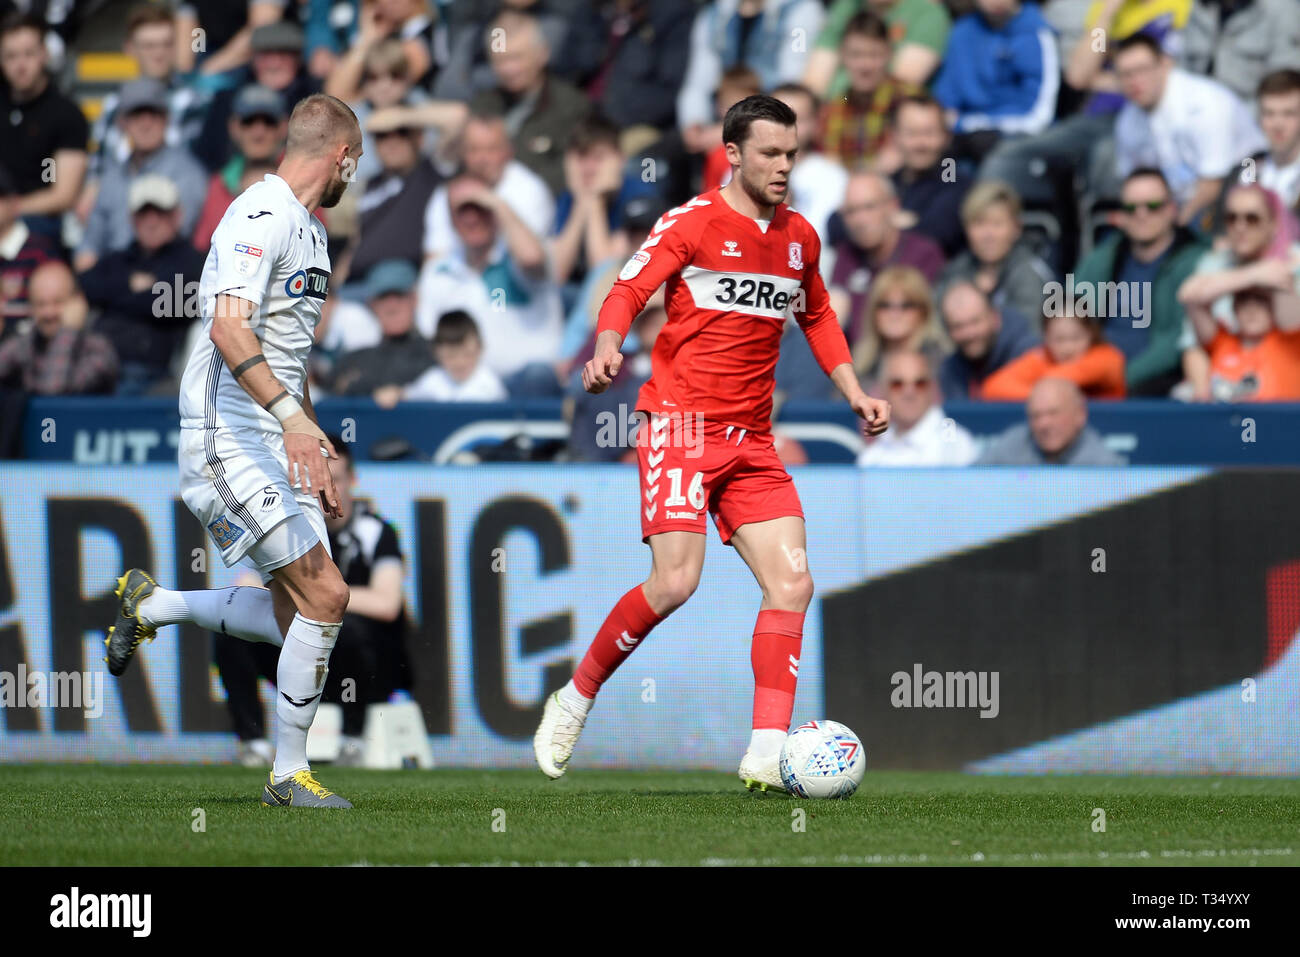 Swansea, Wales, UK. 06th April, 2019Jonathan Howson of Middlesbrough has possession of the ball during the Sky Bet Championship match between Swansea City and Middlesbrough at the Liberty Stadium, Swansea on Saturday 6th April 2019. (Credit: Jeff Thomas | MI News) Editorial use only, license required for commercial use. No use in betting, games or a single club/league/player publications. Photograph may only be used for newspaper and/or magazine editorial purposes. Credit: MI News & Sport /Alamy Live News - Stock Image